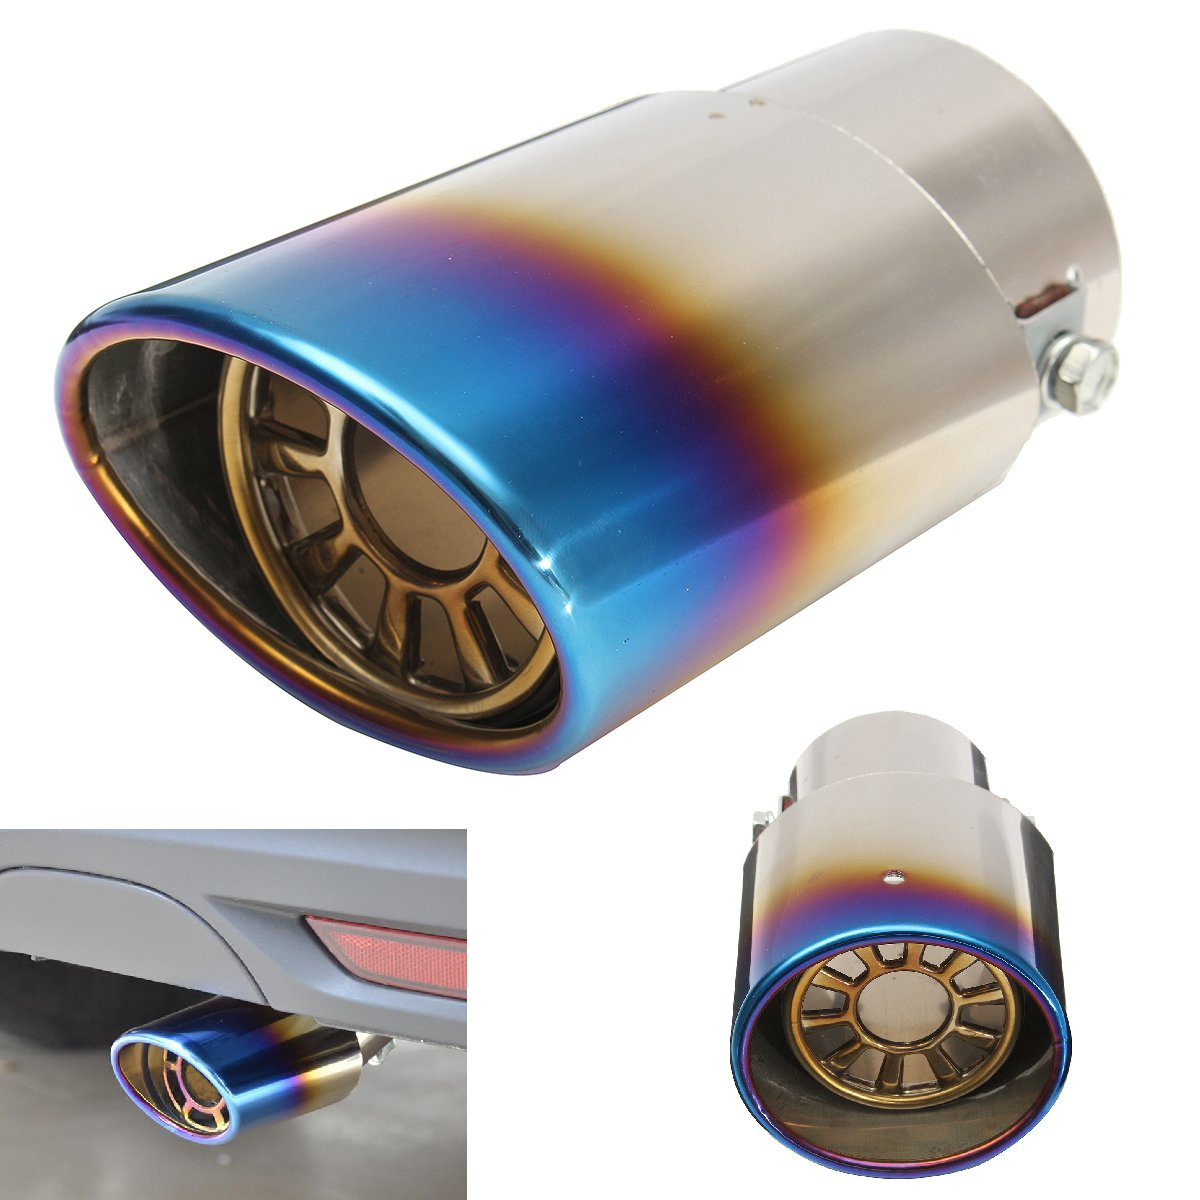 Grilled Blue 6.3cm Stainless Steel Chrome Exhaust Muffler Tip Pipe For All Car Caliber